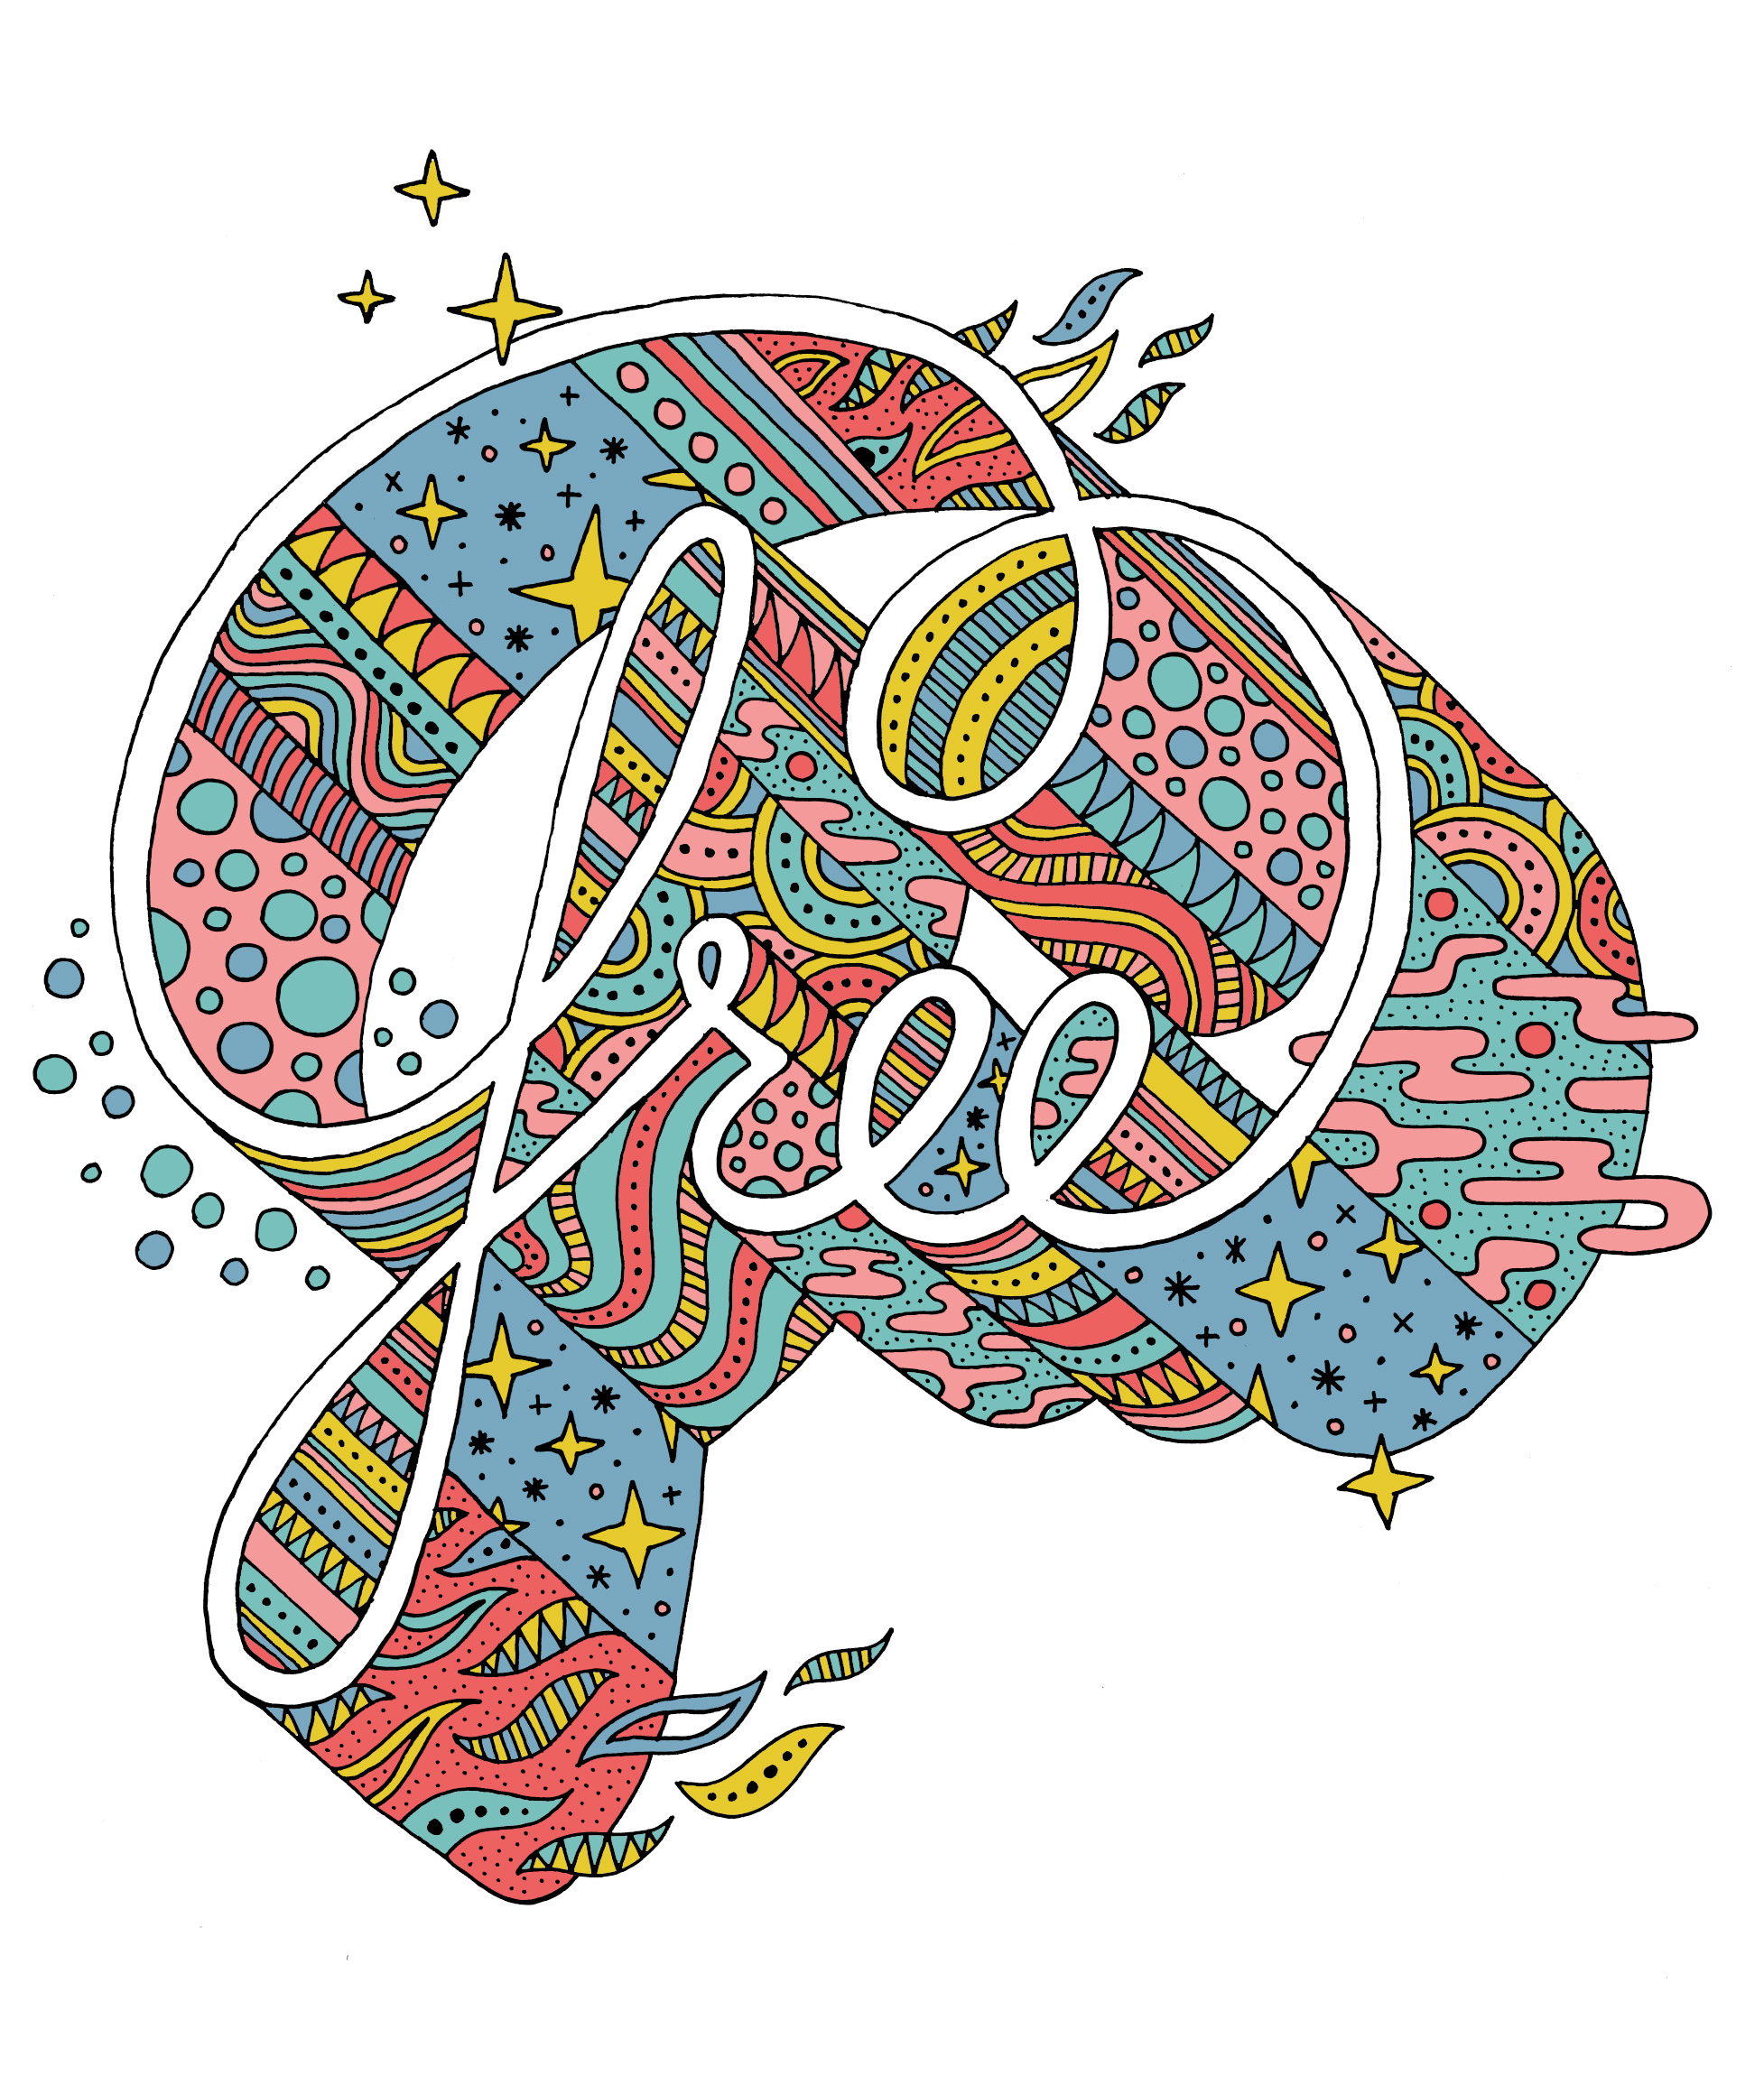 Hand drawn typography of the word free, filled with patterns and textures including stripes, dots, clouds, diamond universes, funky flames and swirling stripes.